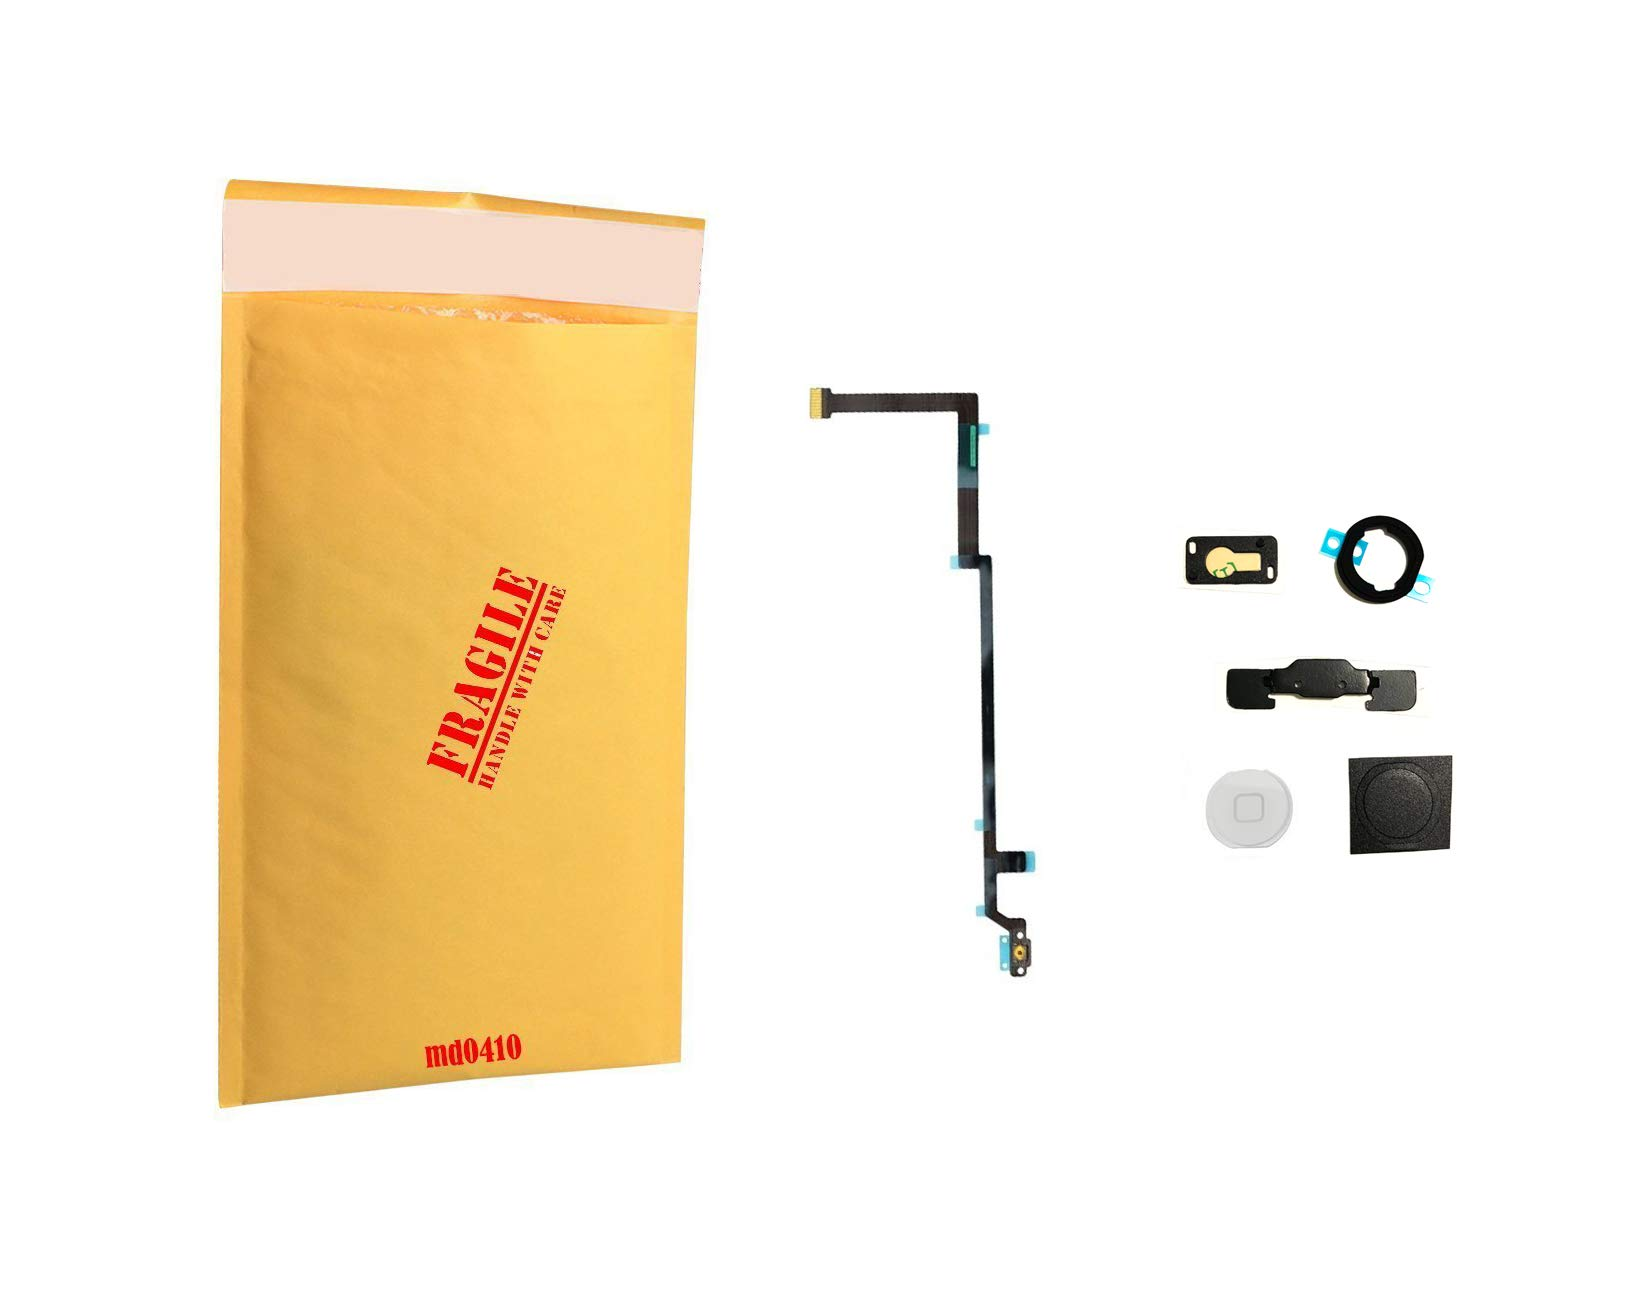 (md0410) White Menu Home Button Flex Ribbon Cable Replacement Part Compatible for ipad Air Model A1474 A1475 A1476 + Camera Holder + Rubber + Metal Bracket